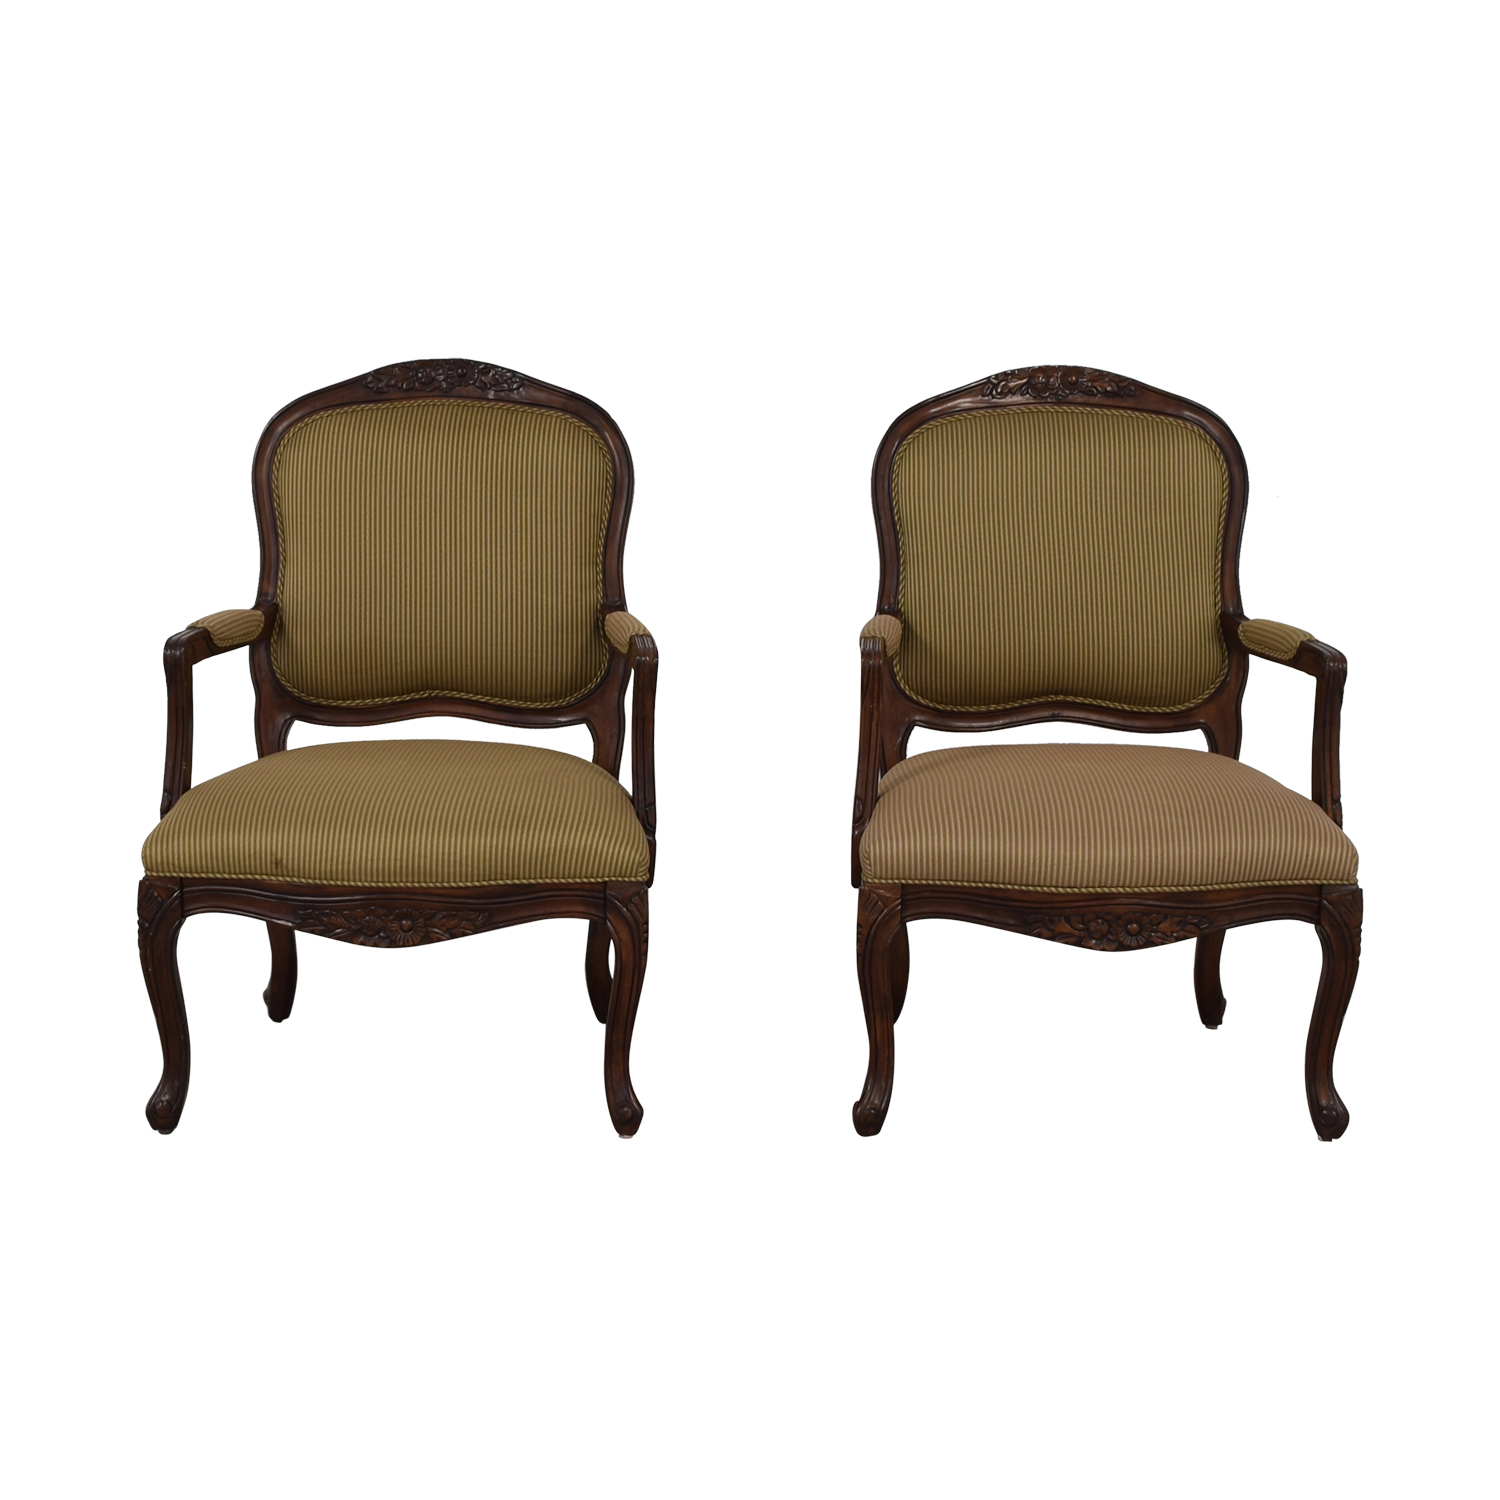 Beige Striped Upholstered Arm Accent Chairs on sale